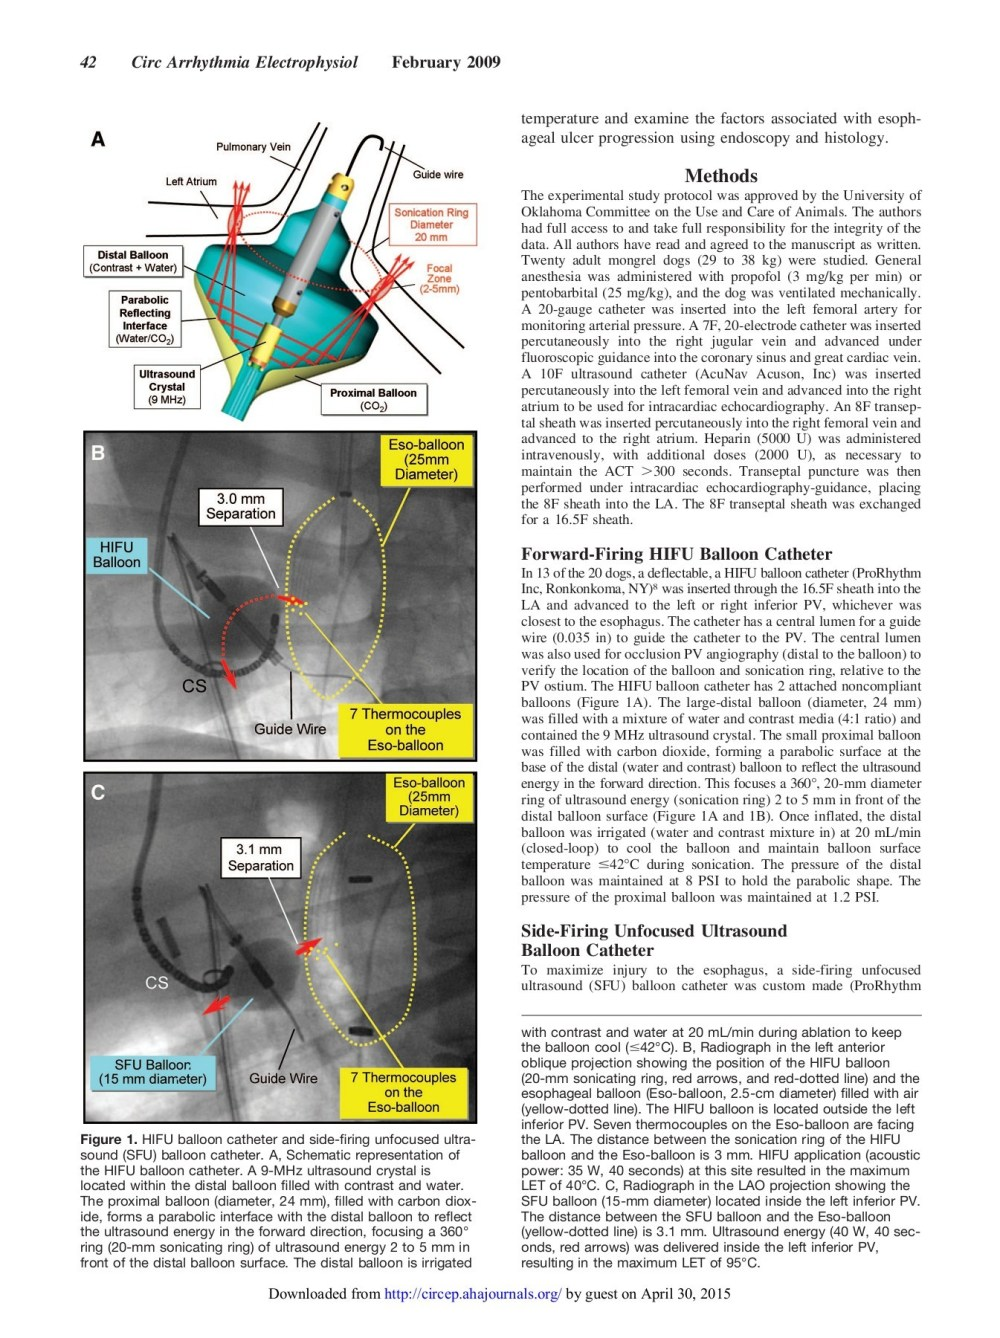 medium resolution of canine model of esophageal injury and atrial esophageal pages 1 10 text version fliphtml5